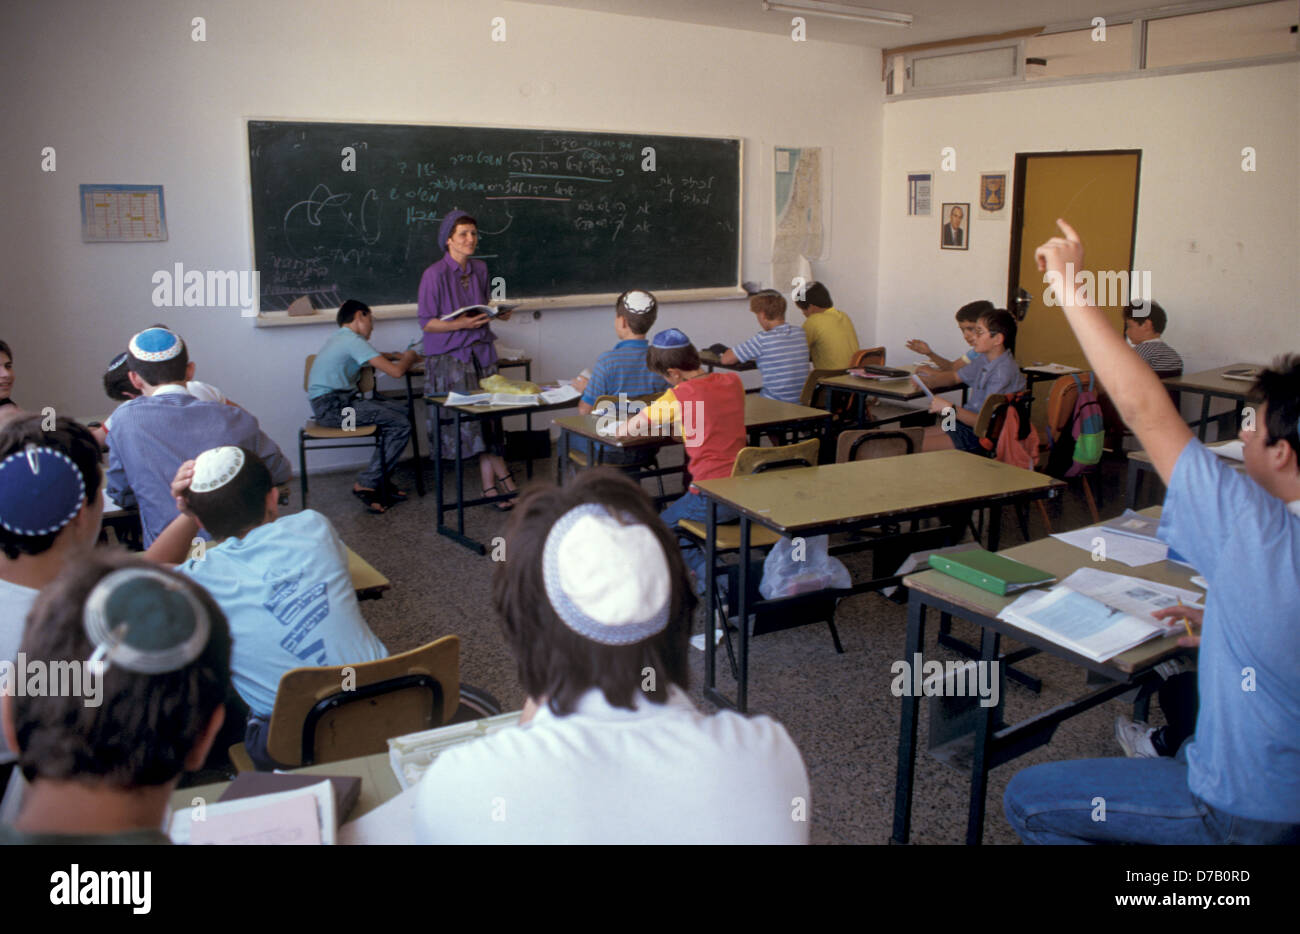 Boys at Classroom in neve michael - Stock Image